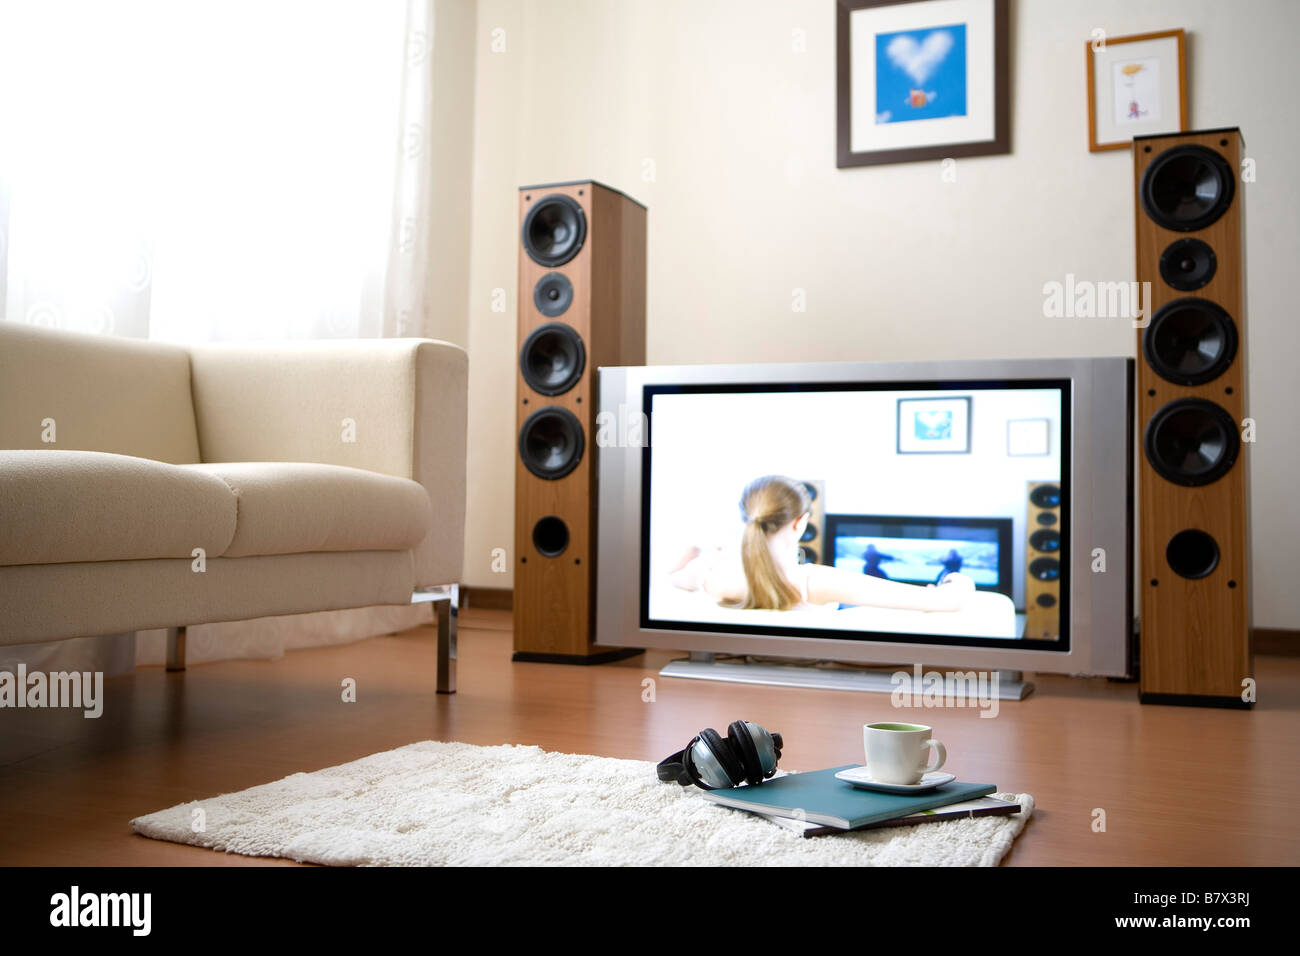 Ground View Of A Living Room With Television On Stock Photo Alamy